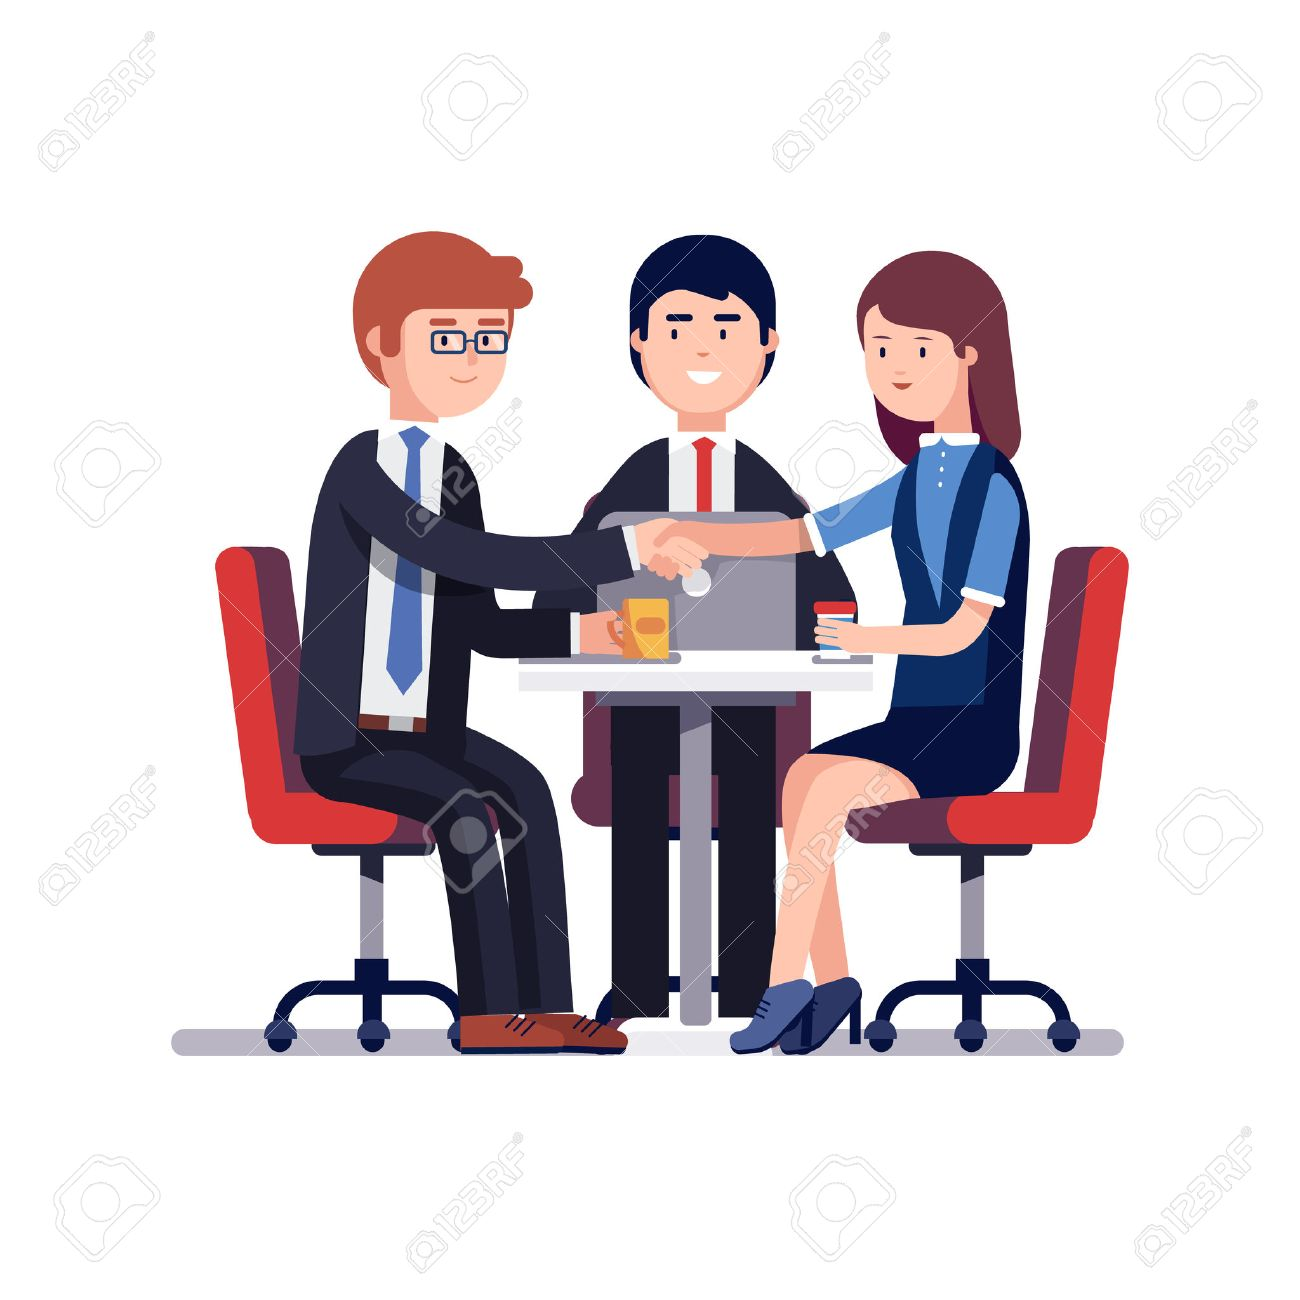 Businessman and woman handshake over round desk. Closing deal.